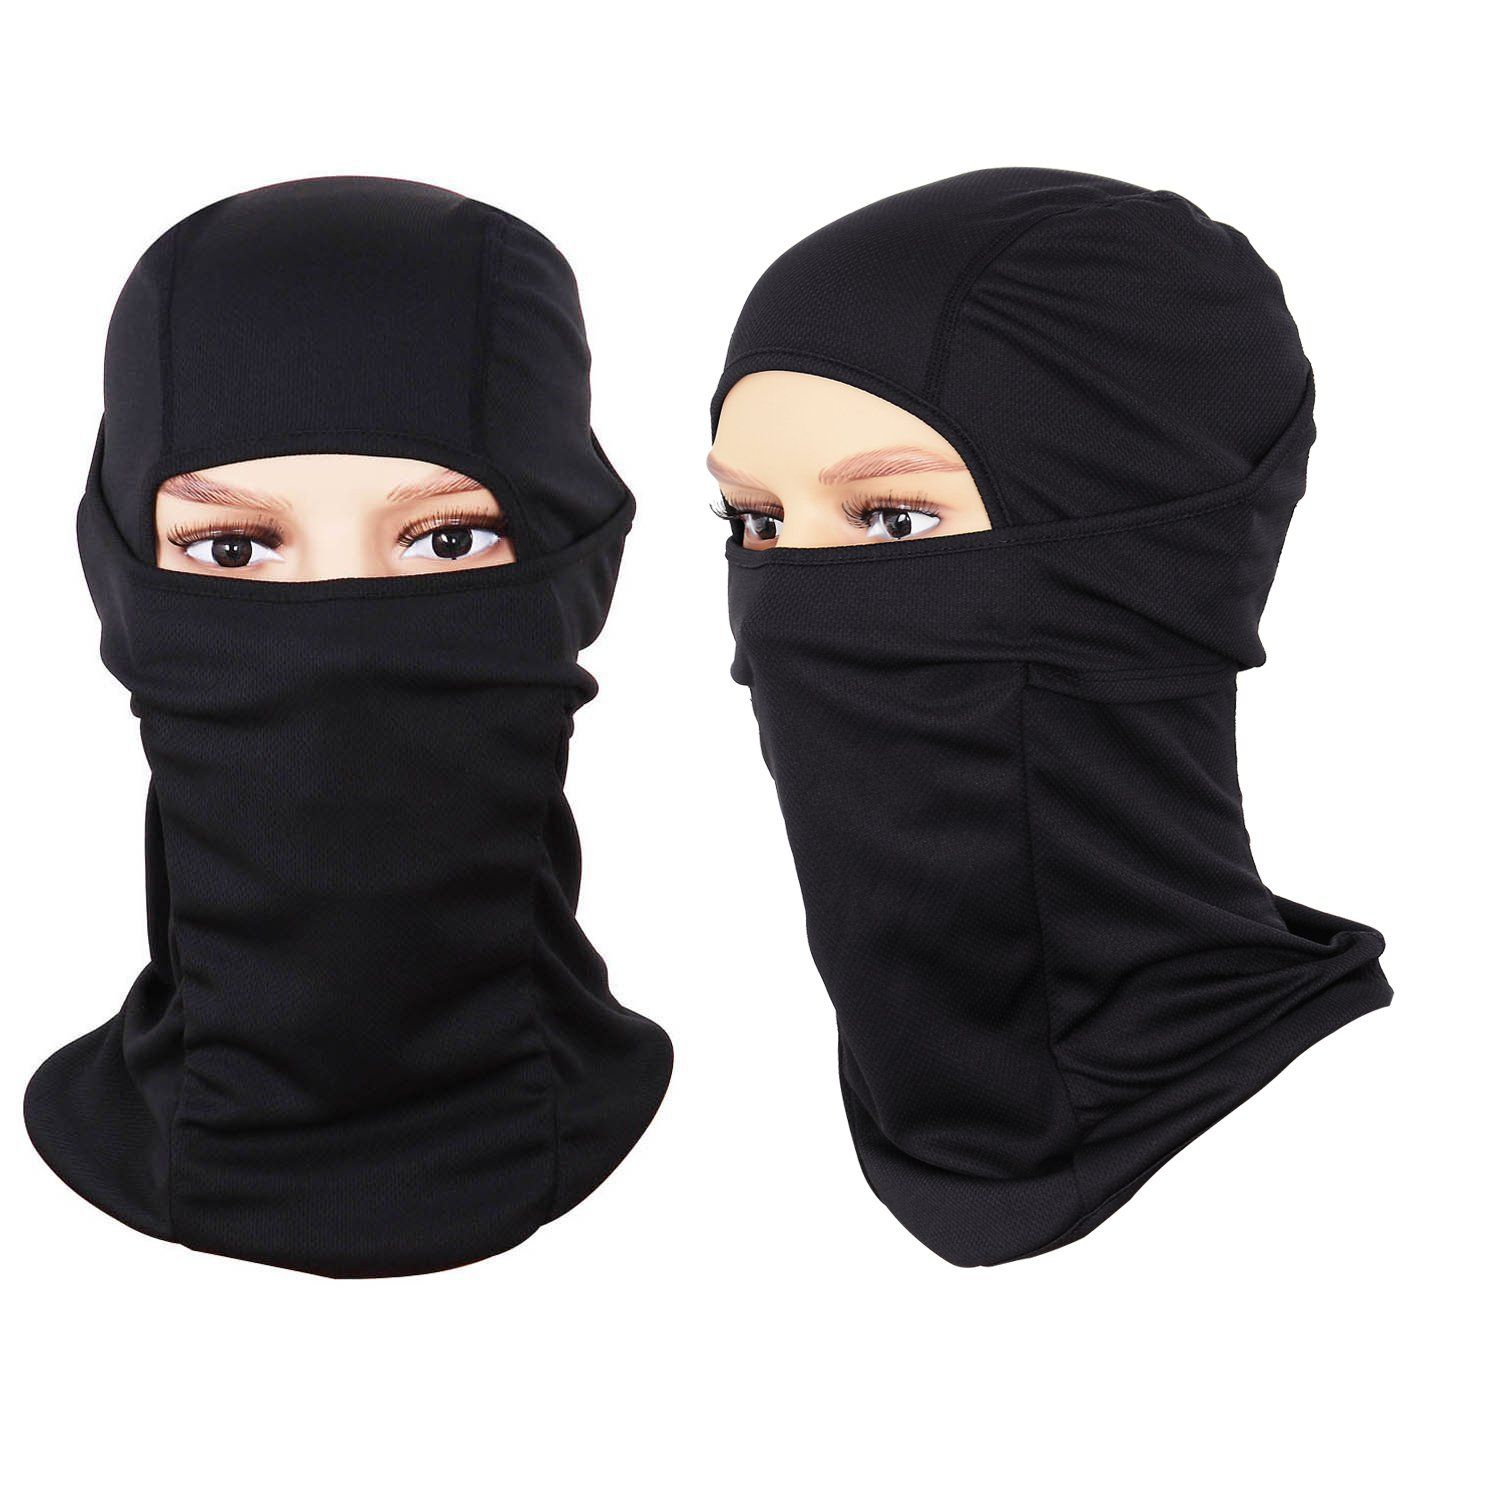 Balaclava For Warmth And Wind Protection Covering Your Neck Makes A Big Difference 20 For 2 Pack At Amazon Cycling Hat Helmet Liner Ski Mask